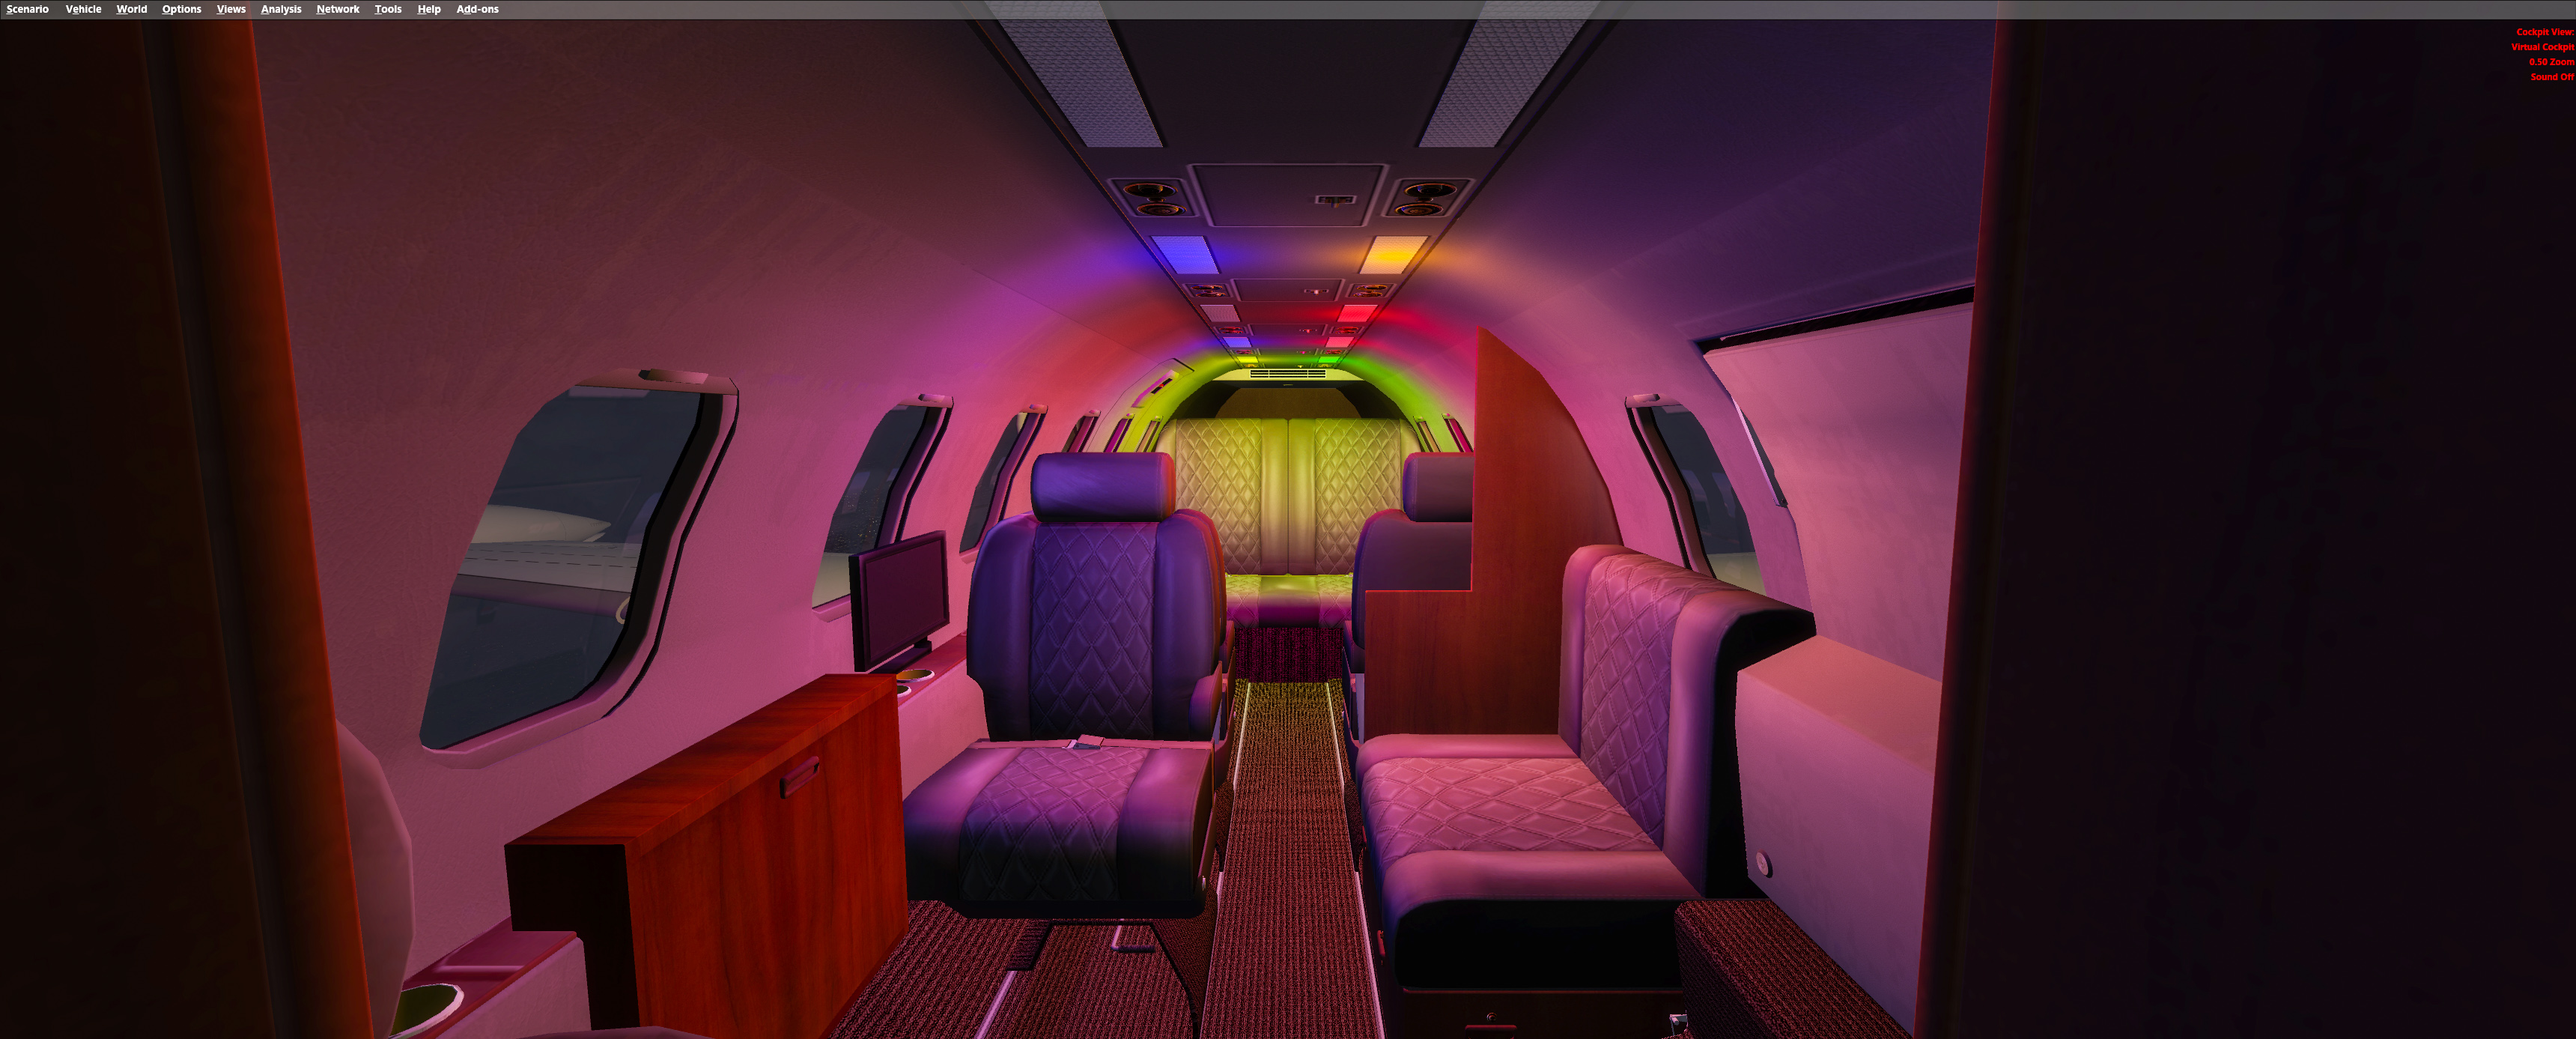 FSFX PACKAGES - LEAR35 IMMERSION (FSX, FSX:SE & P3D)